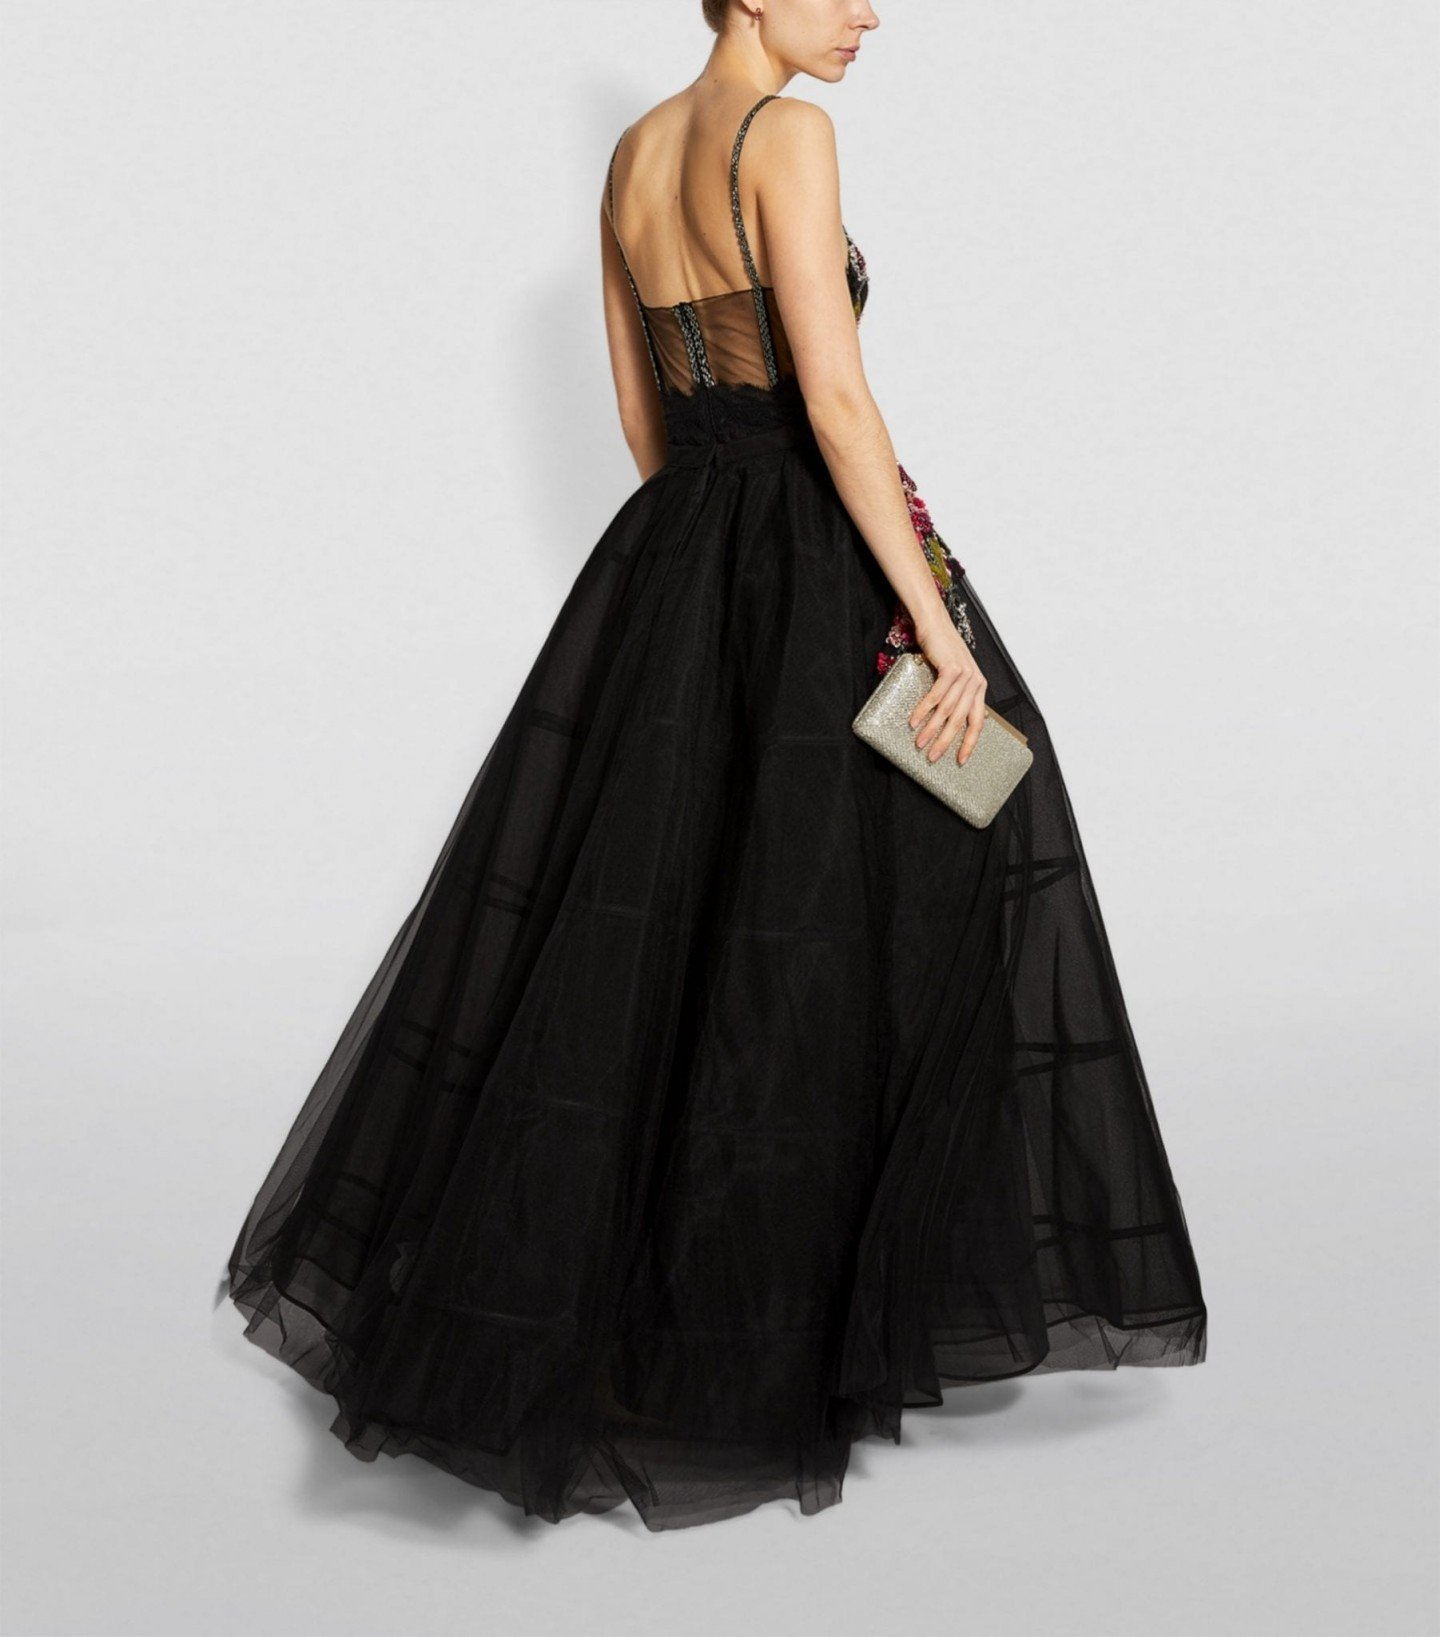 PATBO Detachable Skirt With Beaded Gown